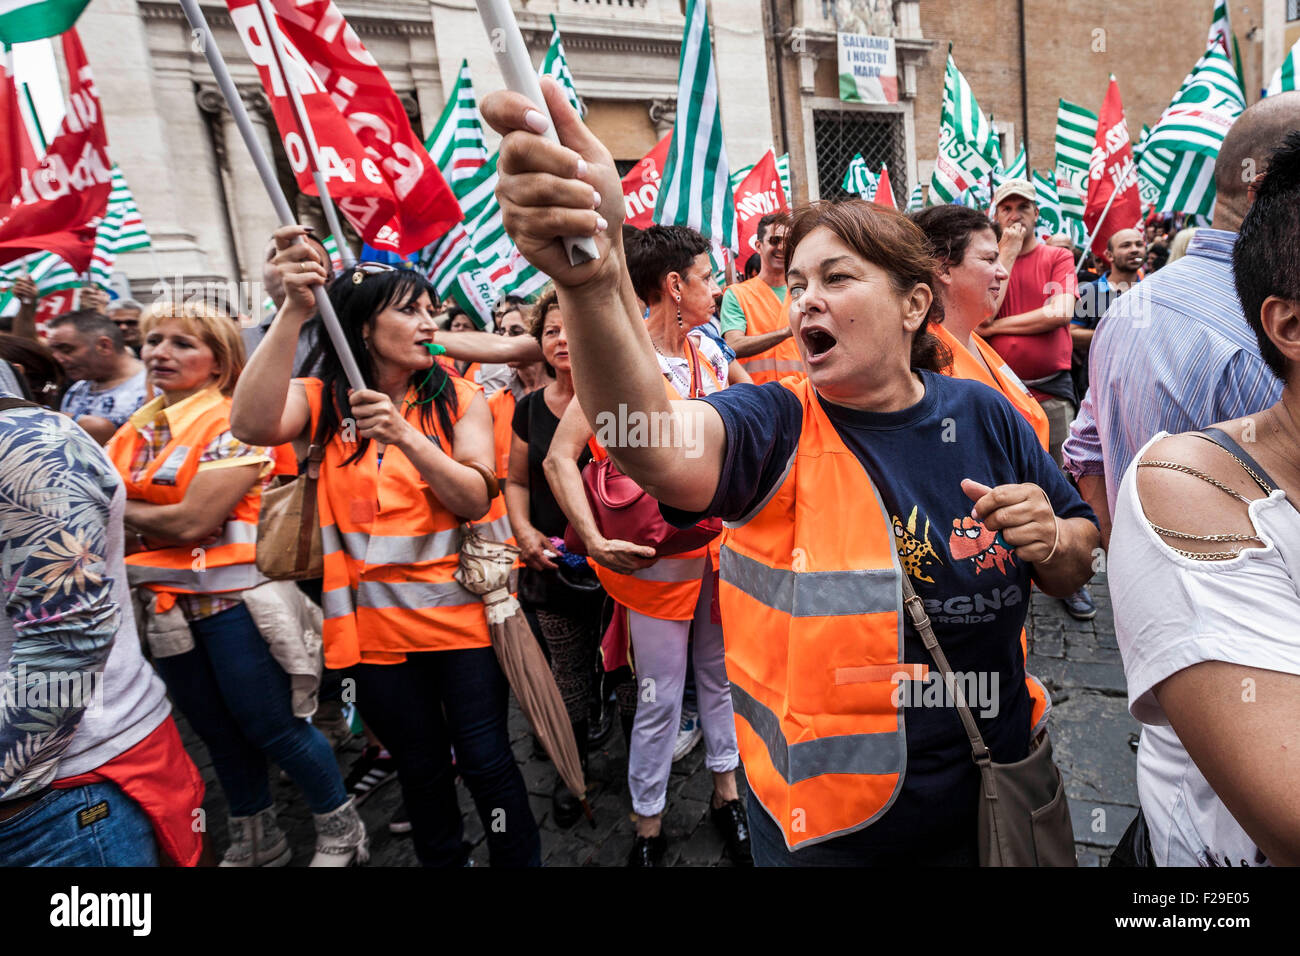 Rome, Italy. 14th Sep, 2015. AMA's employees shout slogans as they take part in a demonstration to protest against Stock Photo